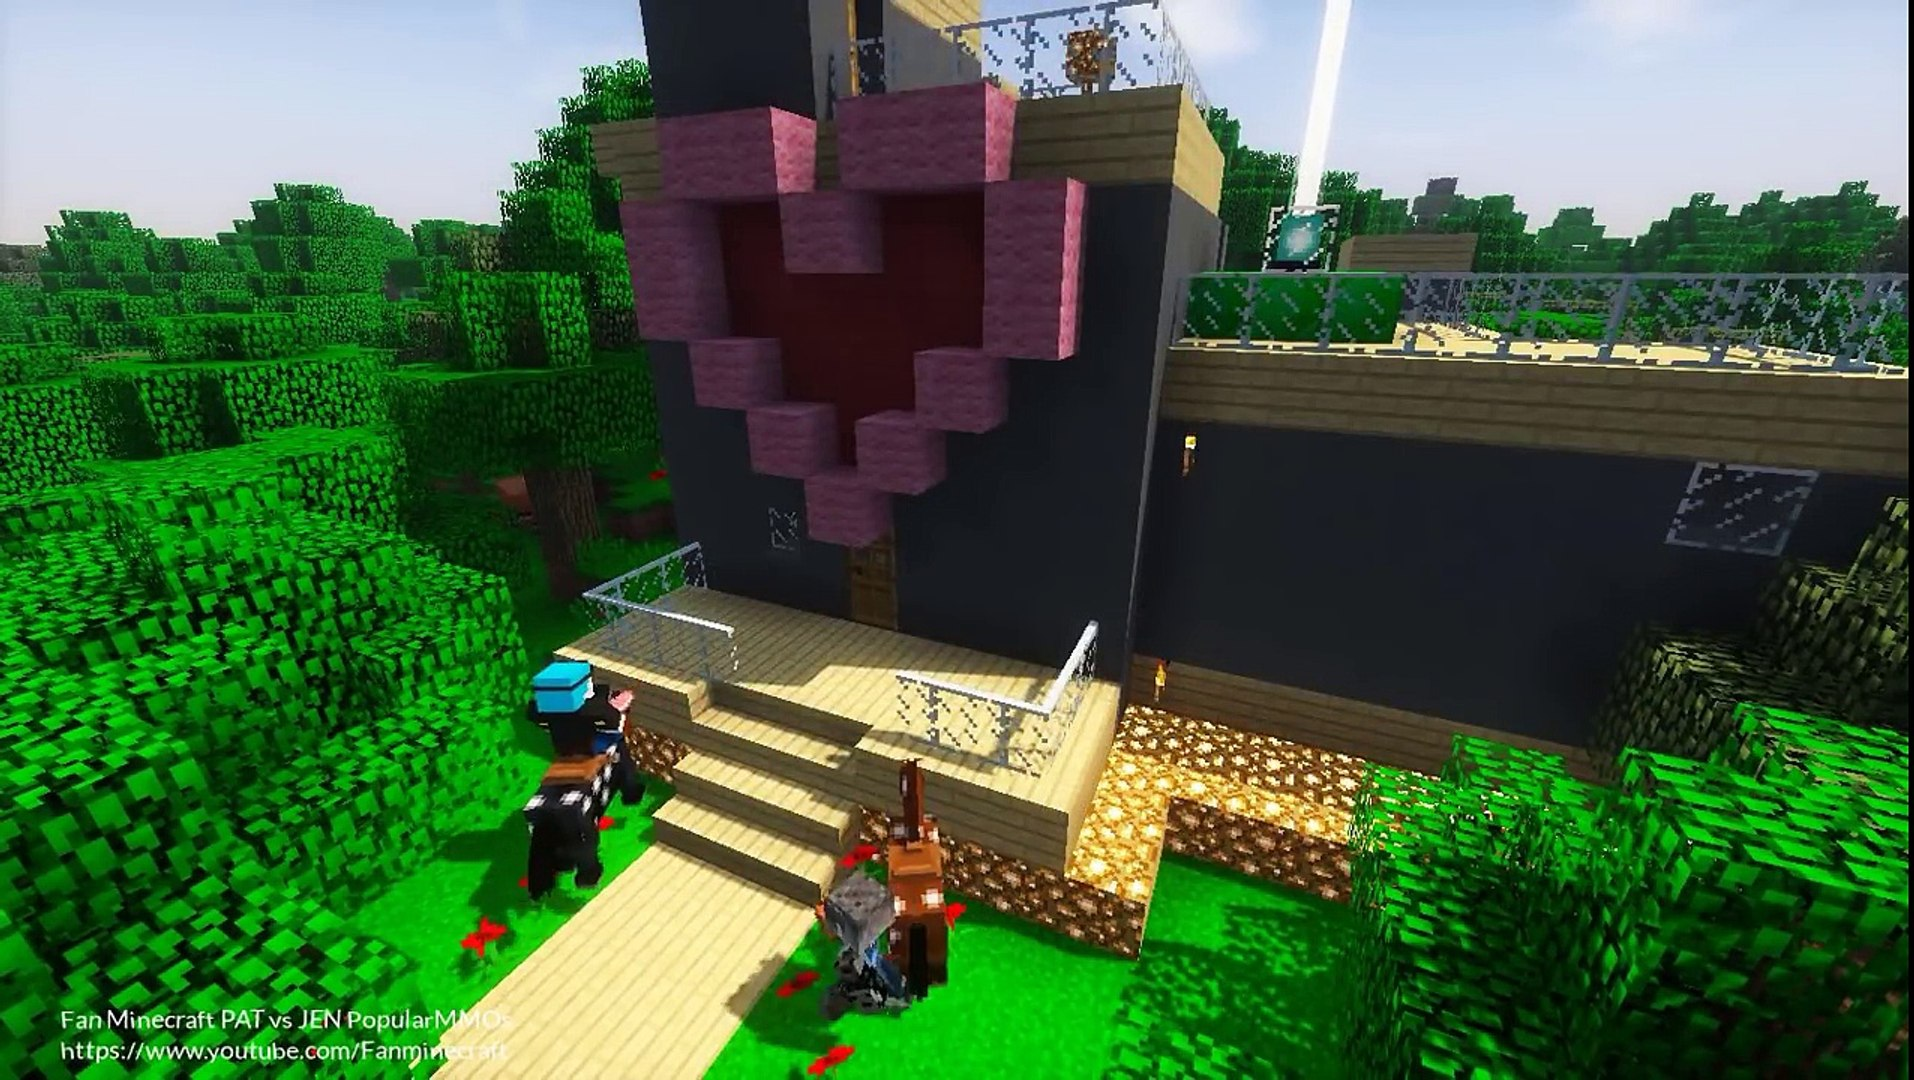 minecraft videos by pat and jen - minecraft videos by pat and jen: